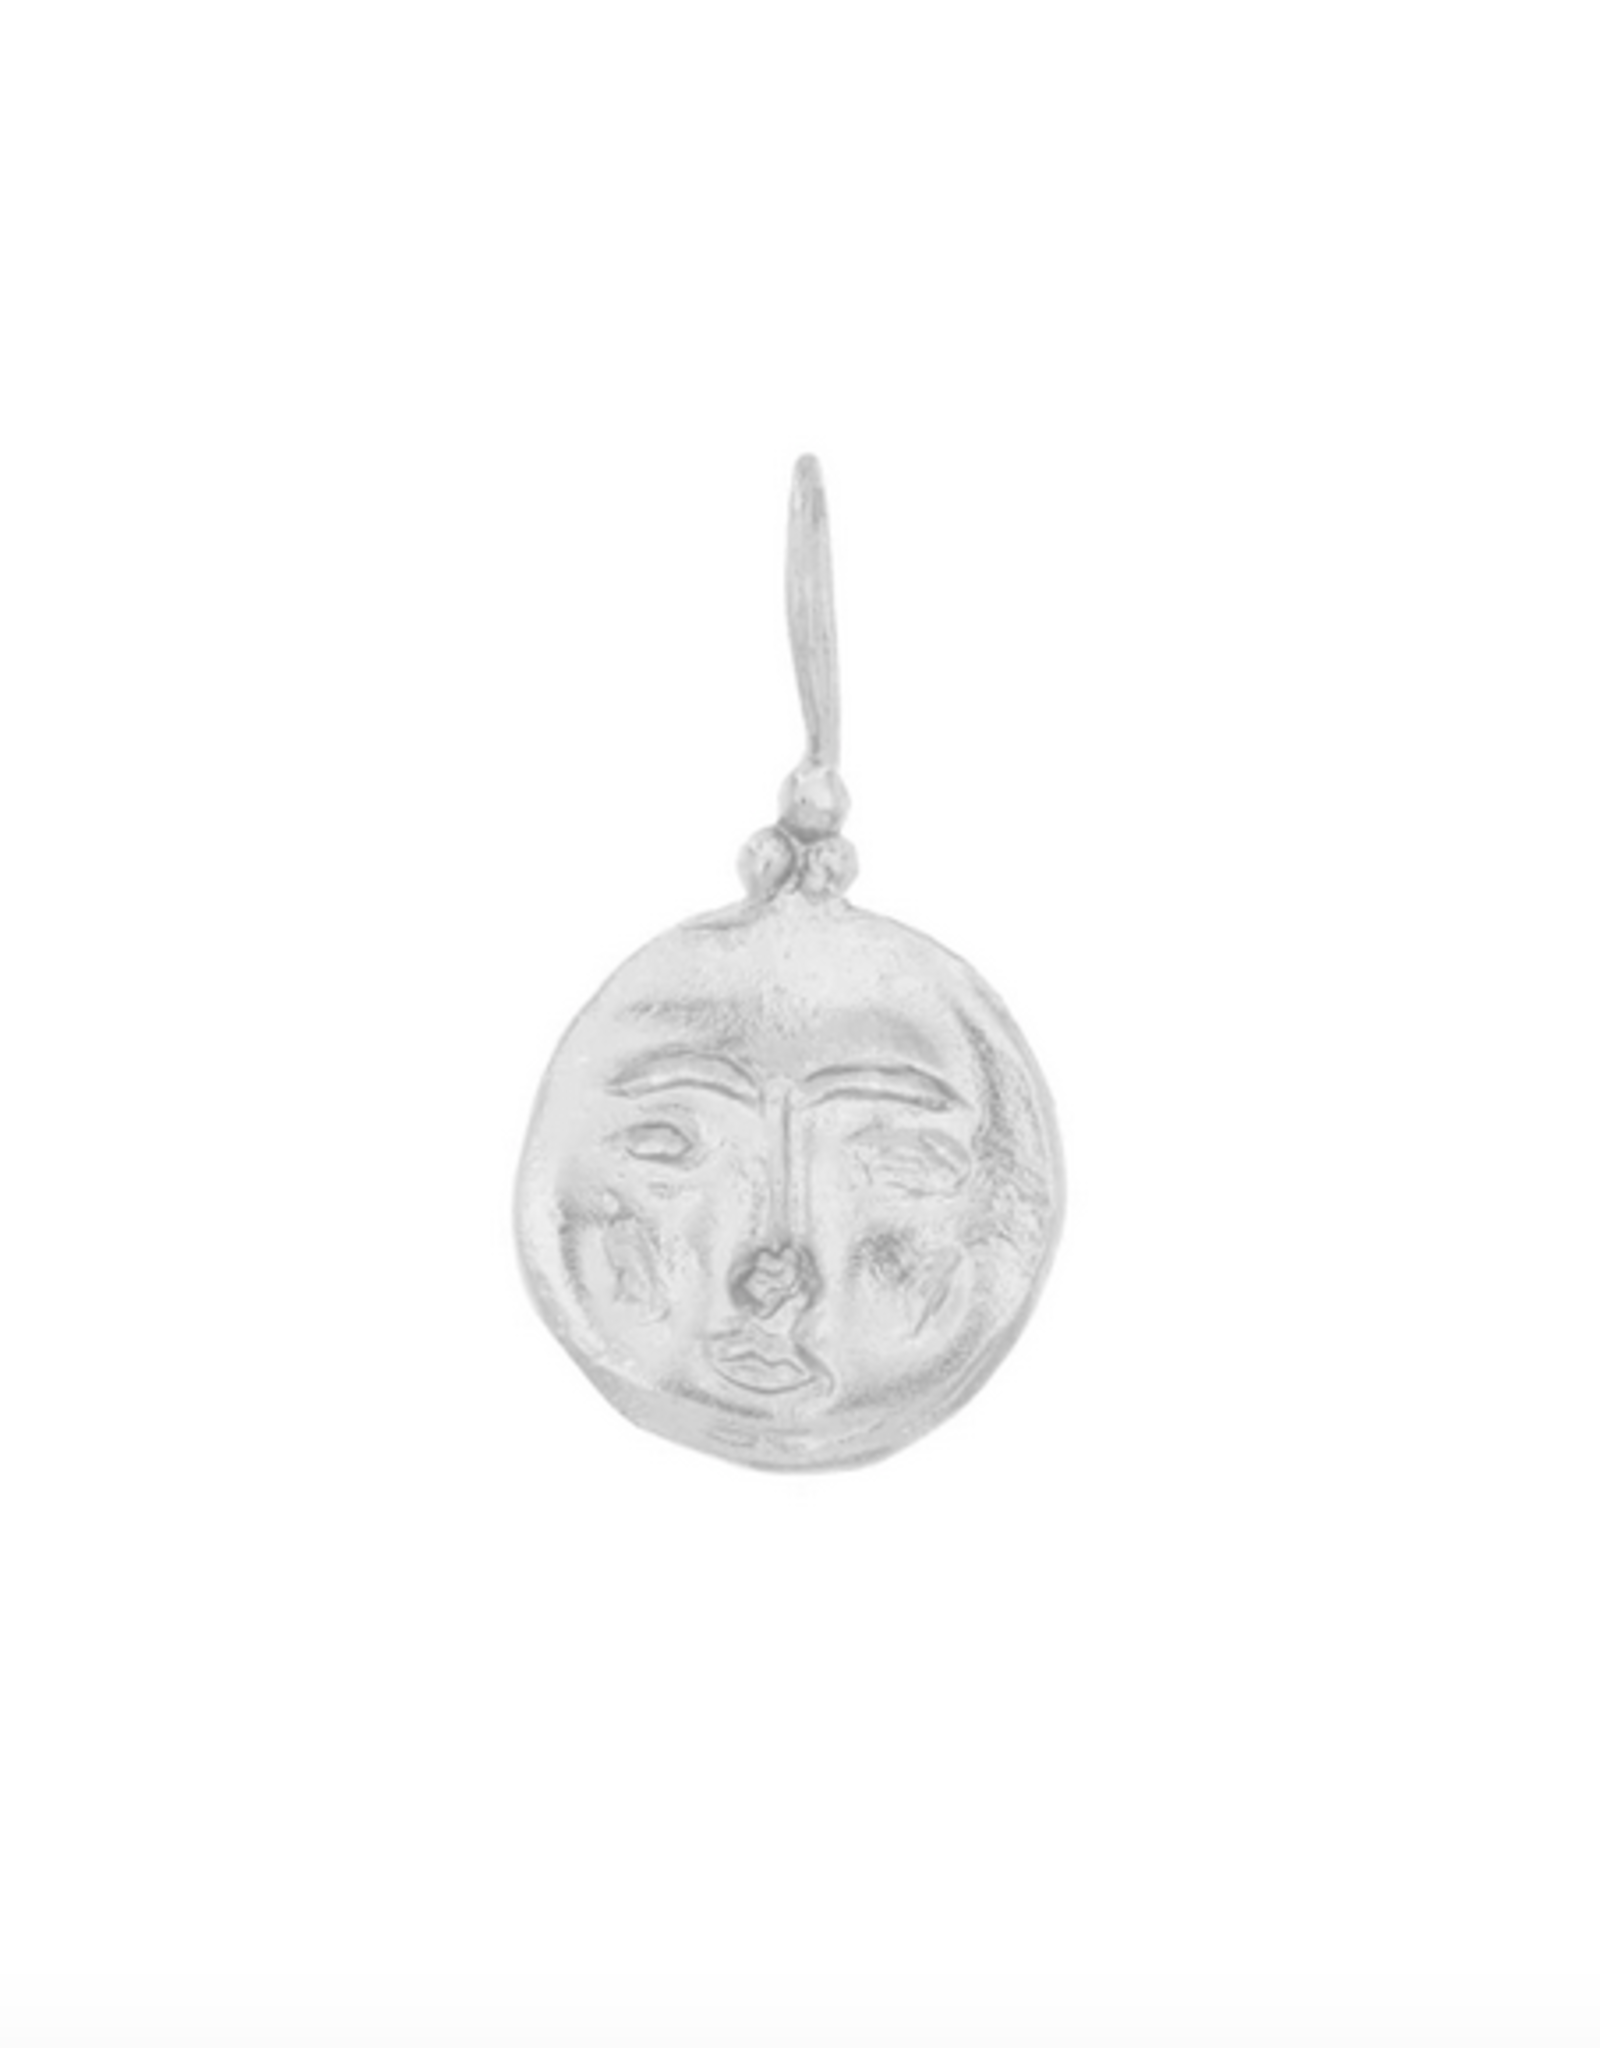 Cleopatra's Bling Moon Face Pendant Silver Necklace